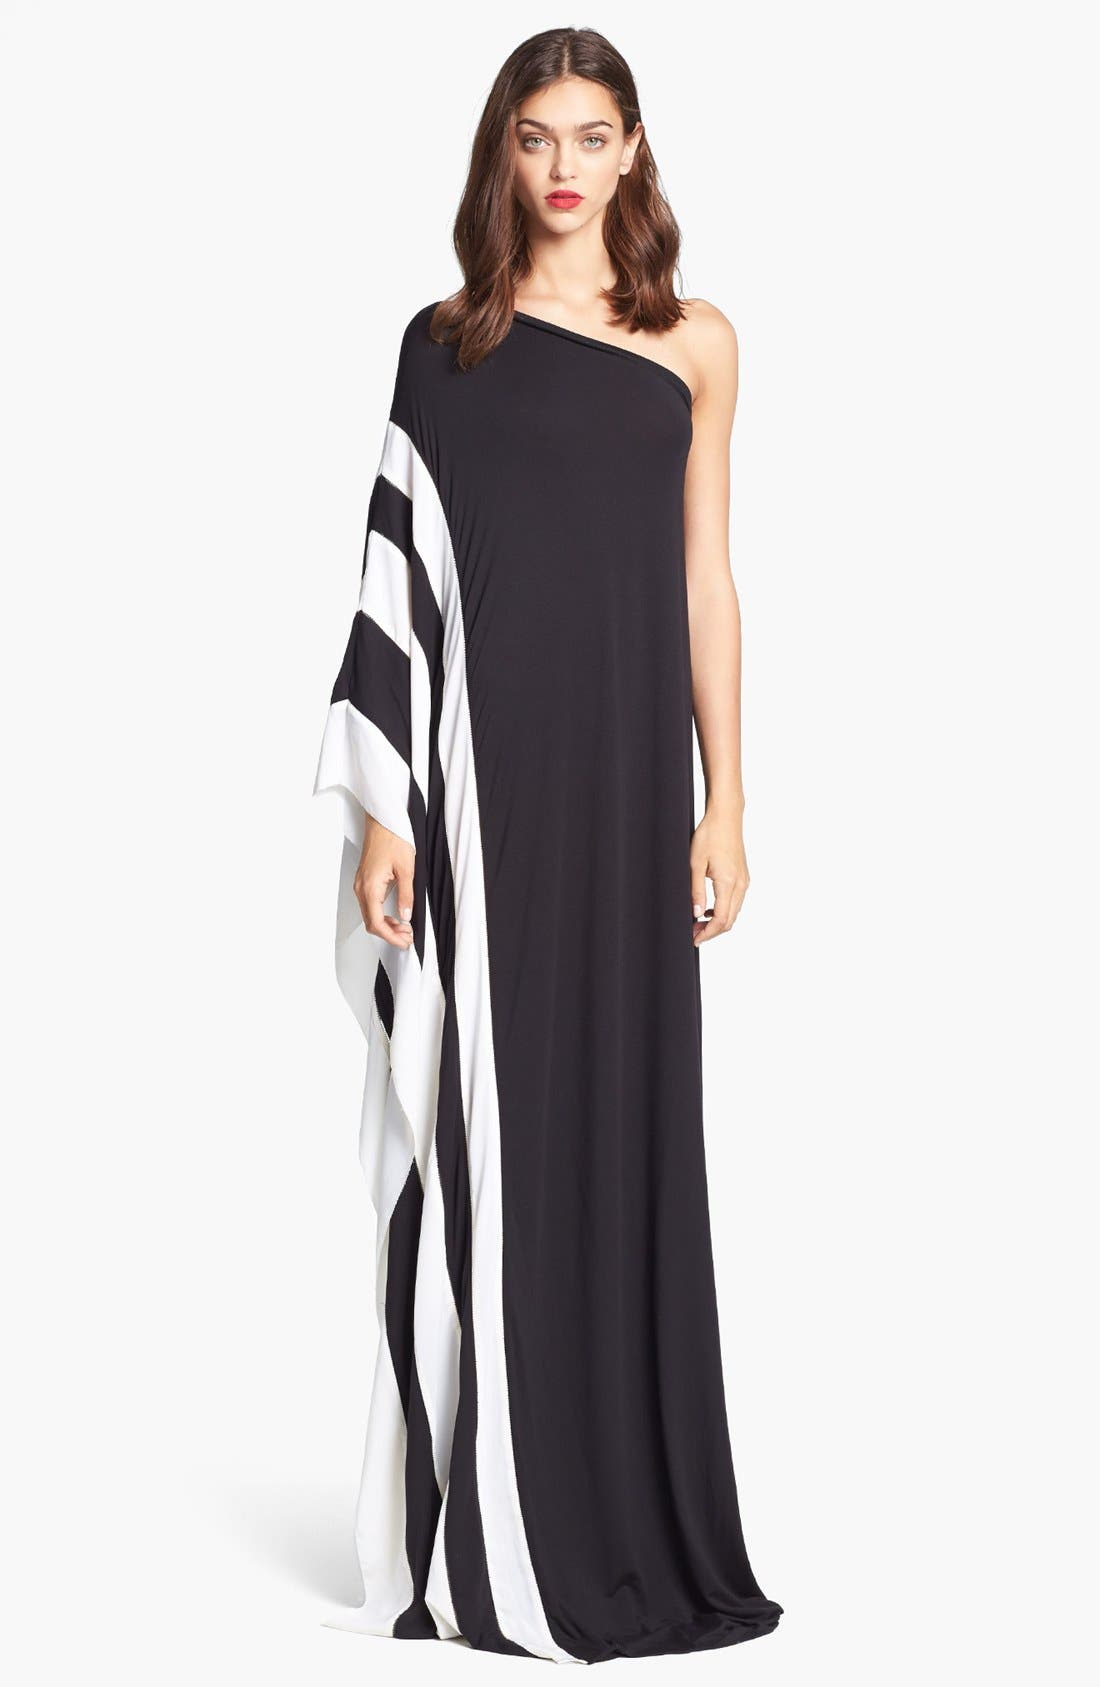 Main Image - Rachel Zoe 'Azur' One Shoulder Jersey Maxi Dress